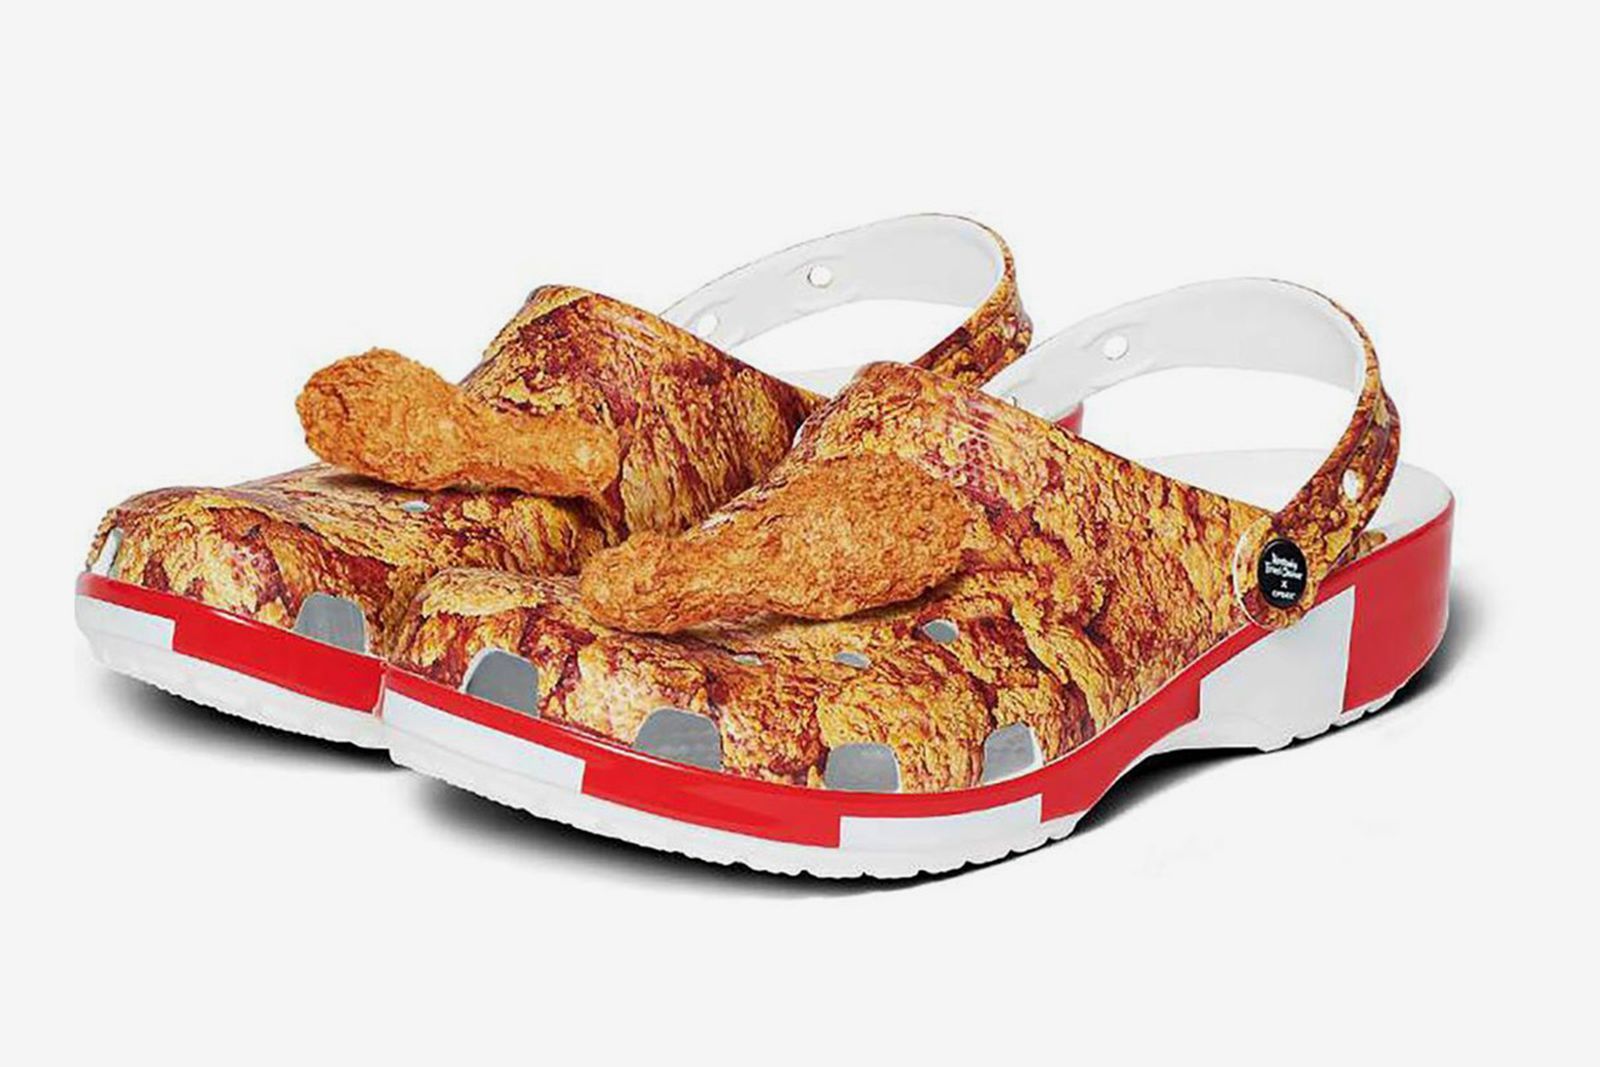 eoy-collabs-kfc-crocs-01